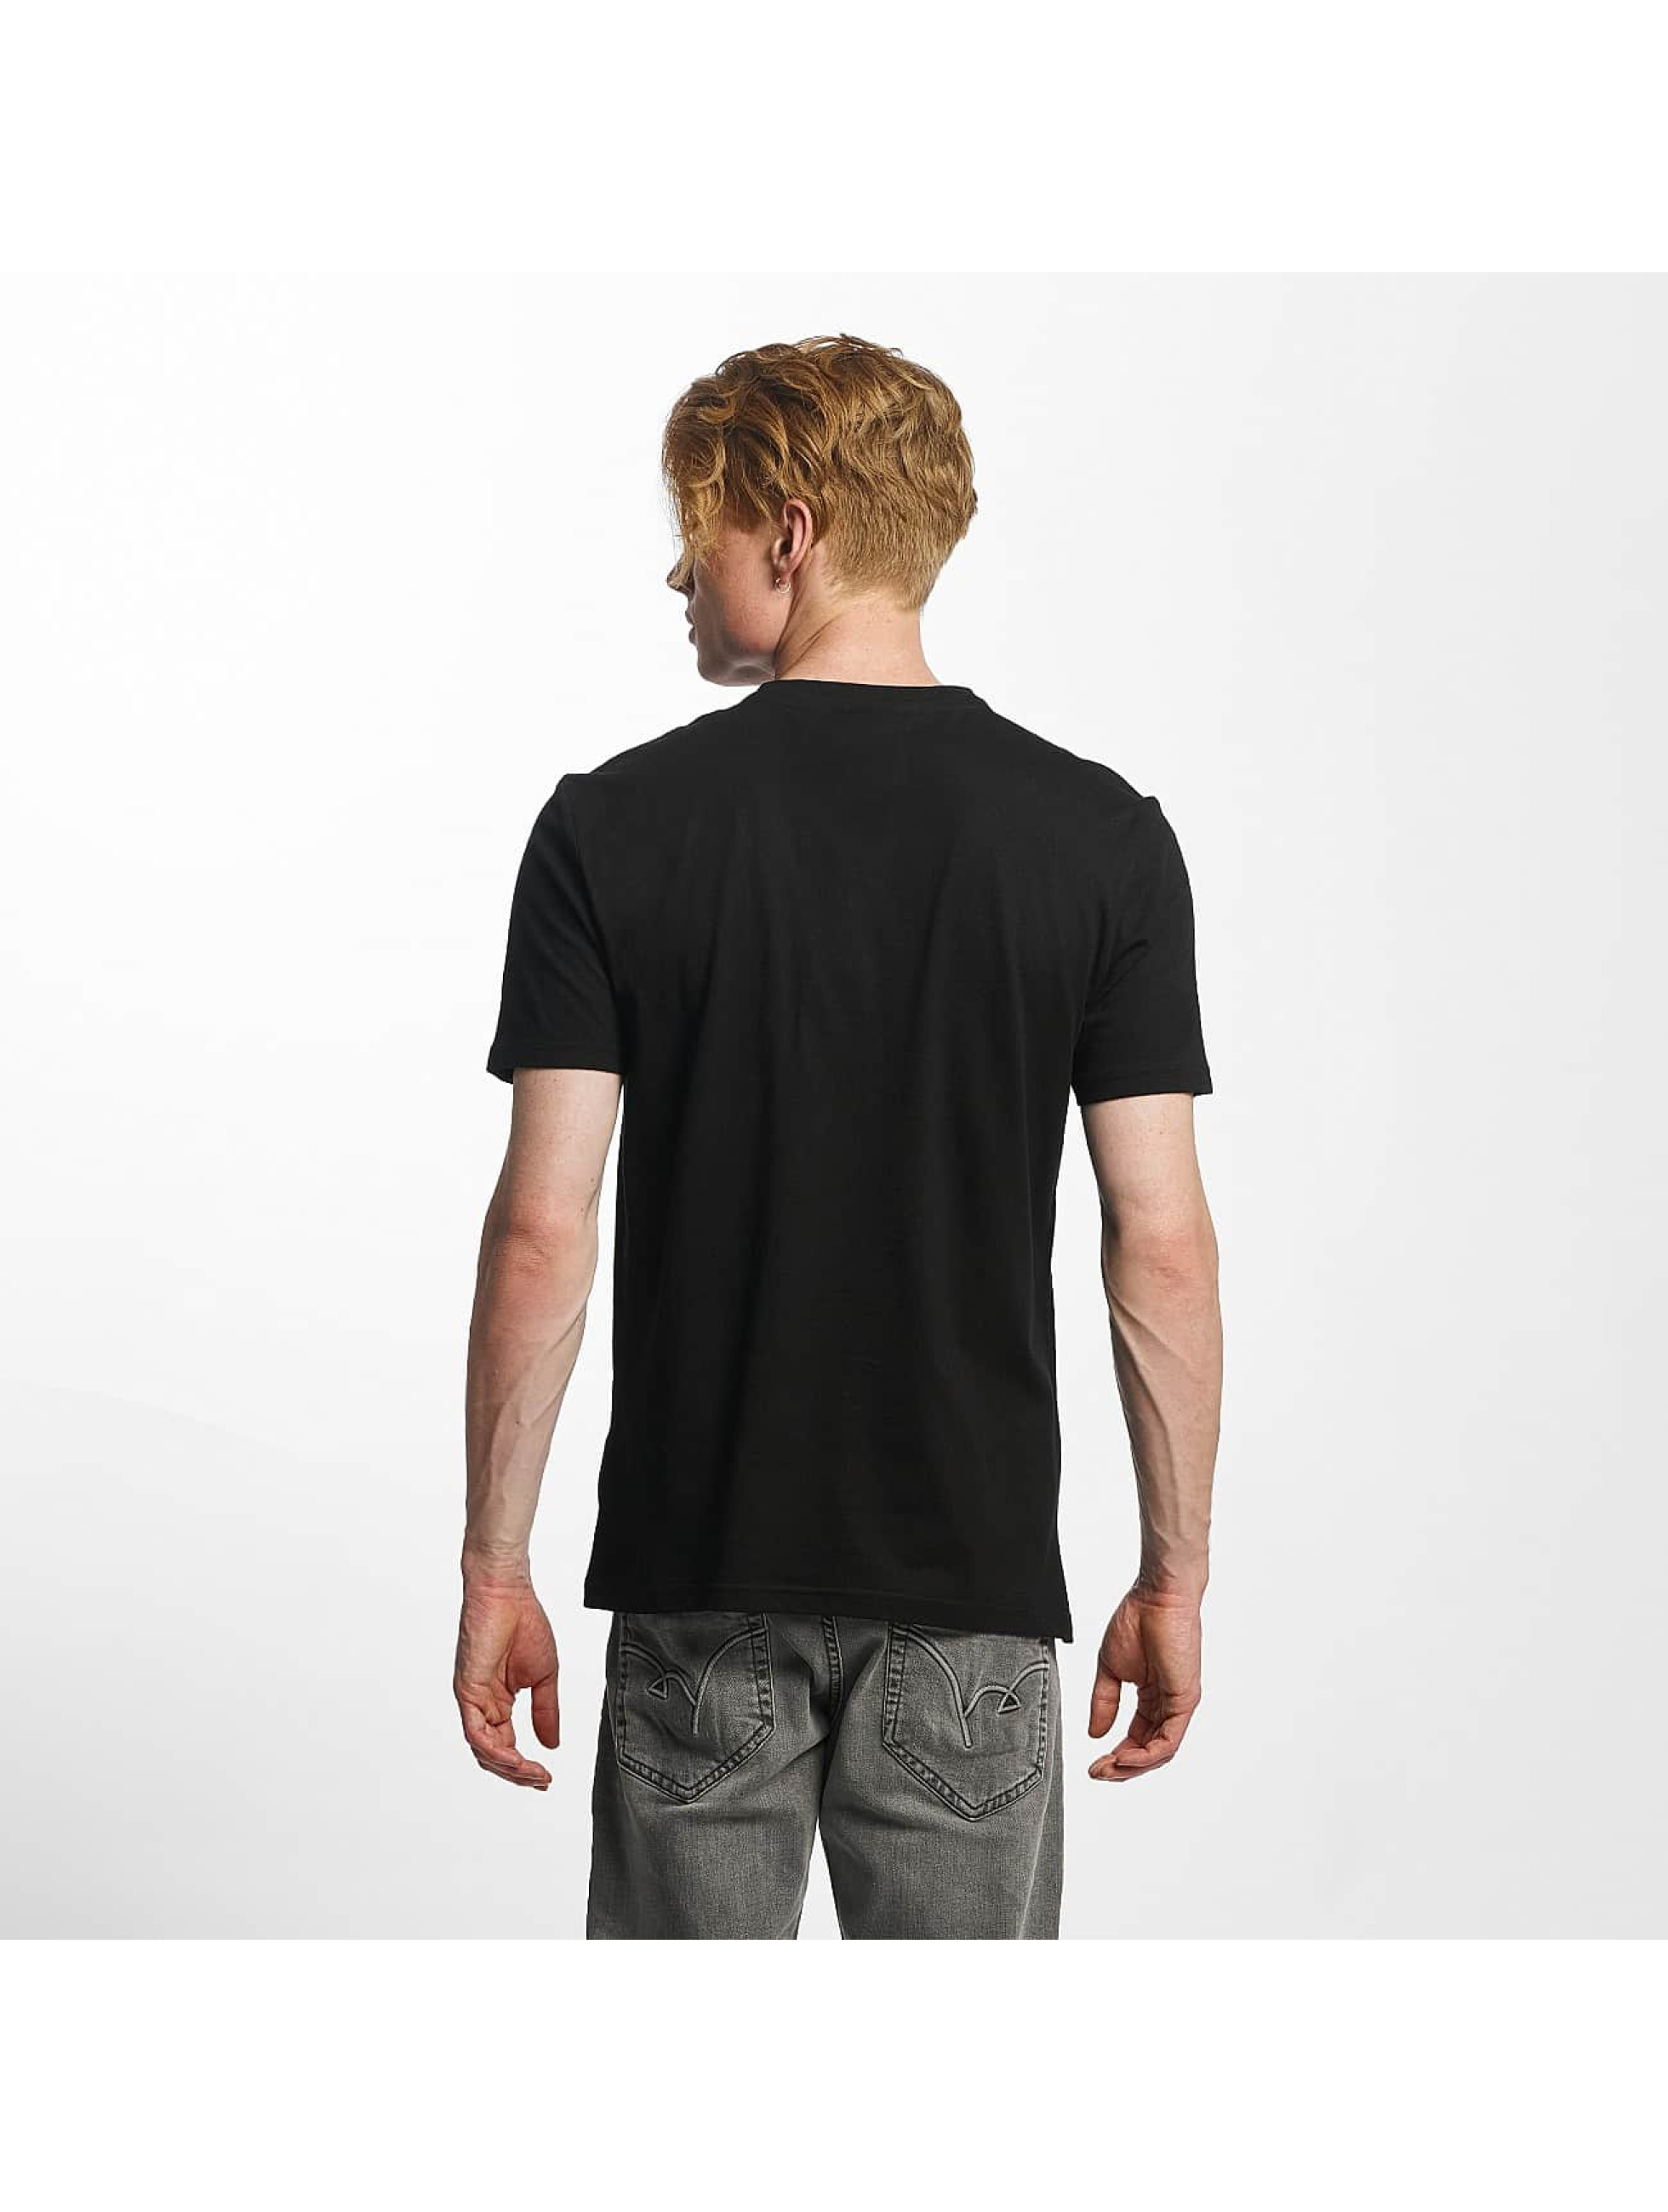 Kaporal not from here noir homme t shirt kaporal acheter - Tee shirt kaporal pas cher homme ...